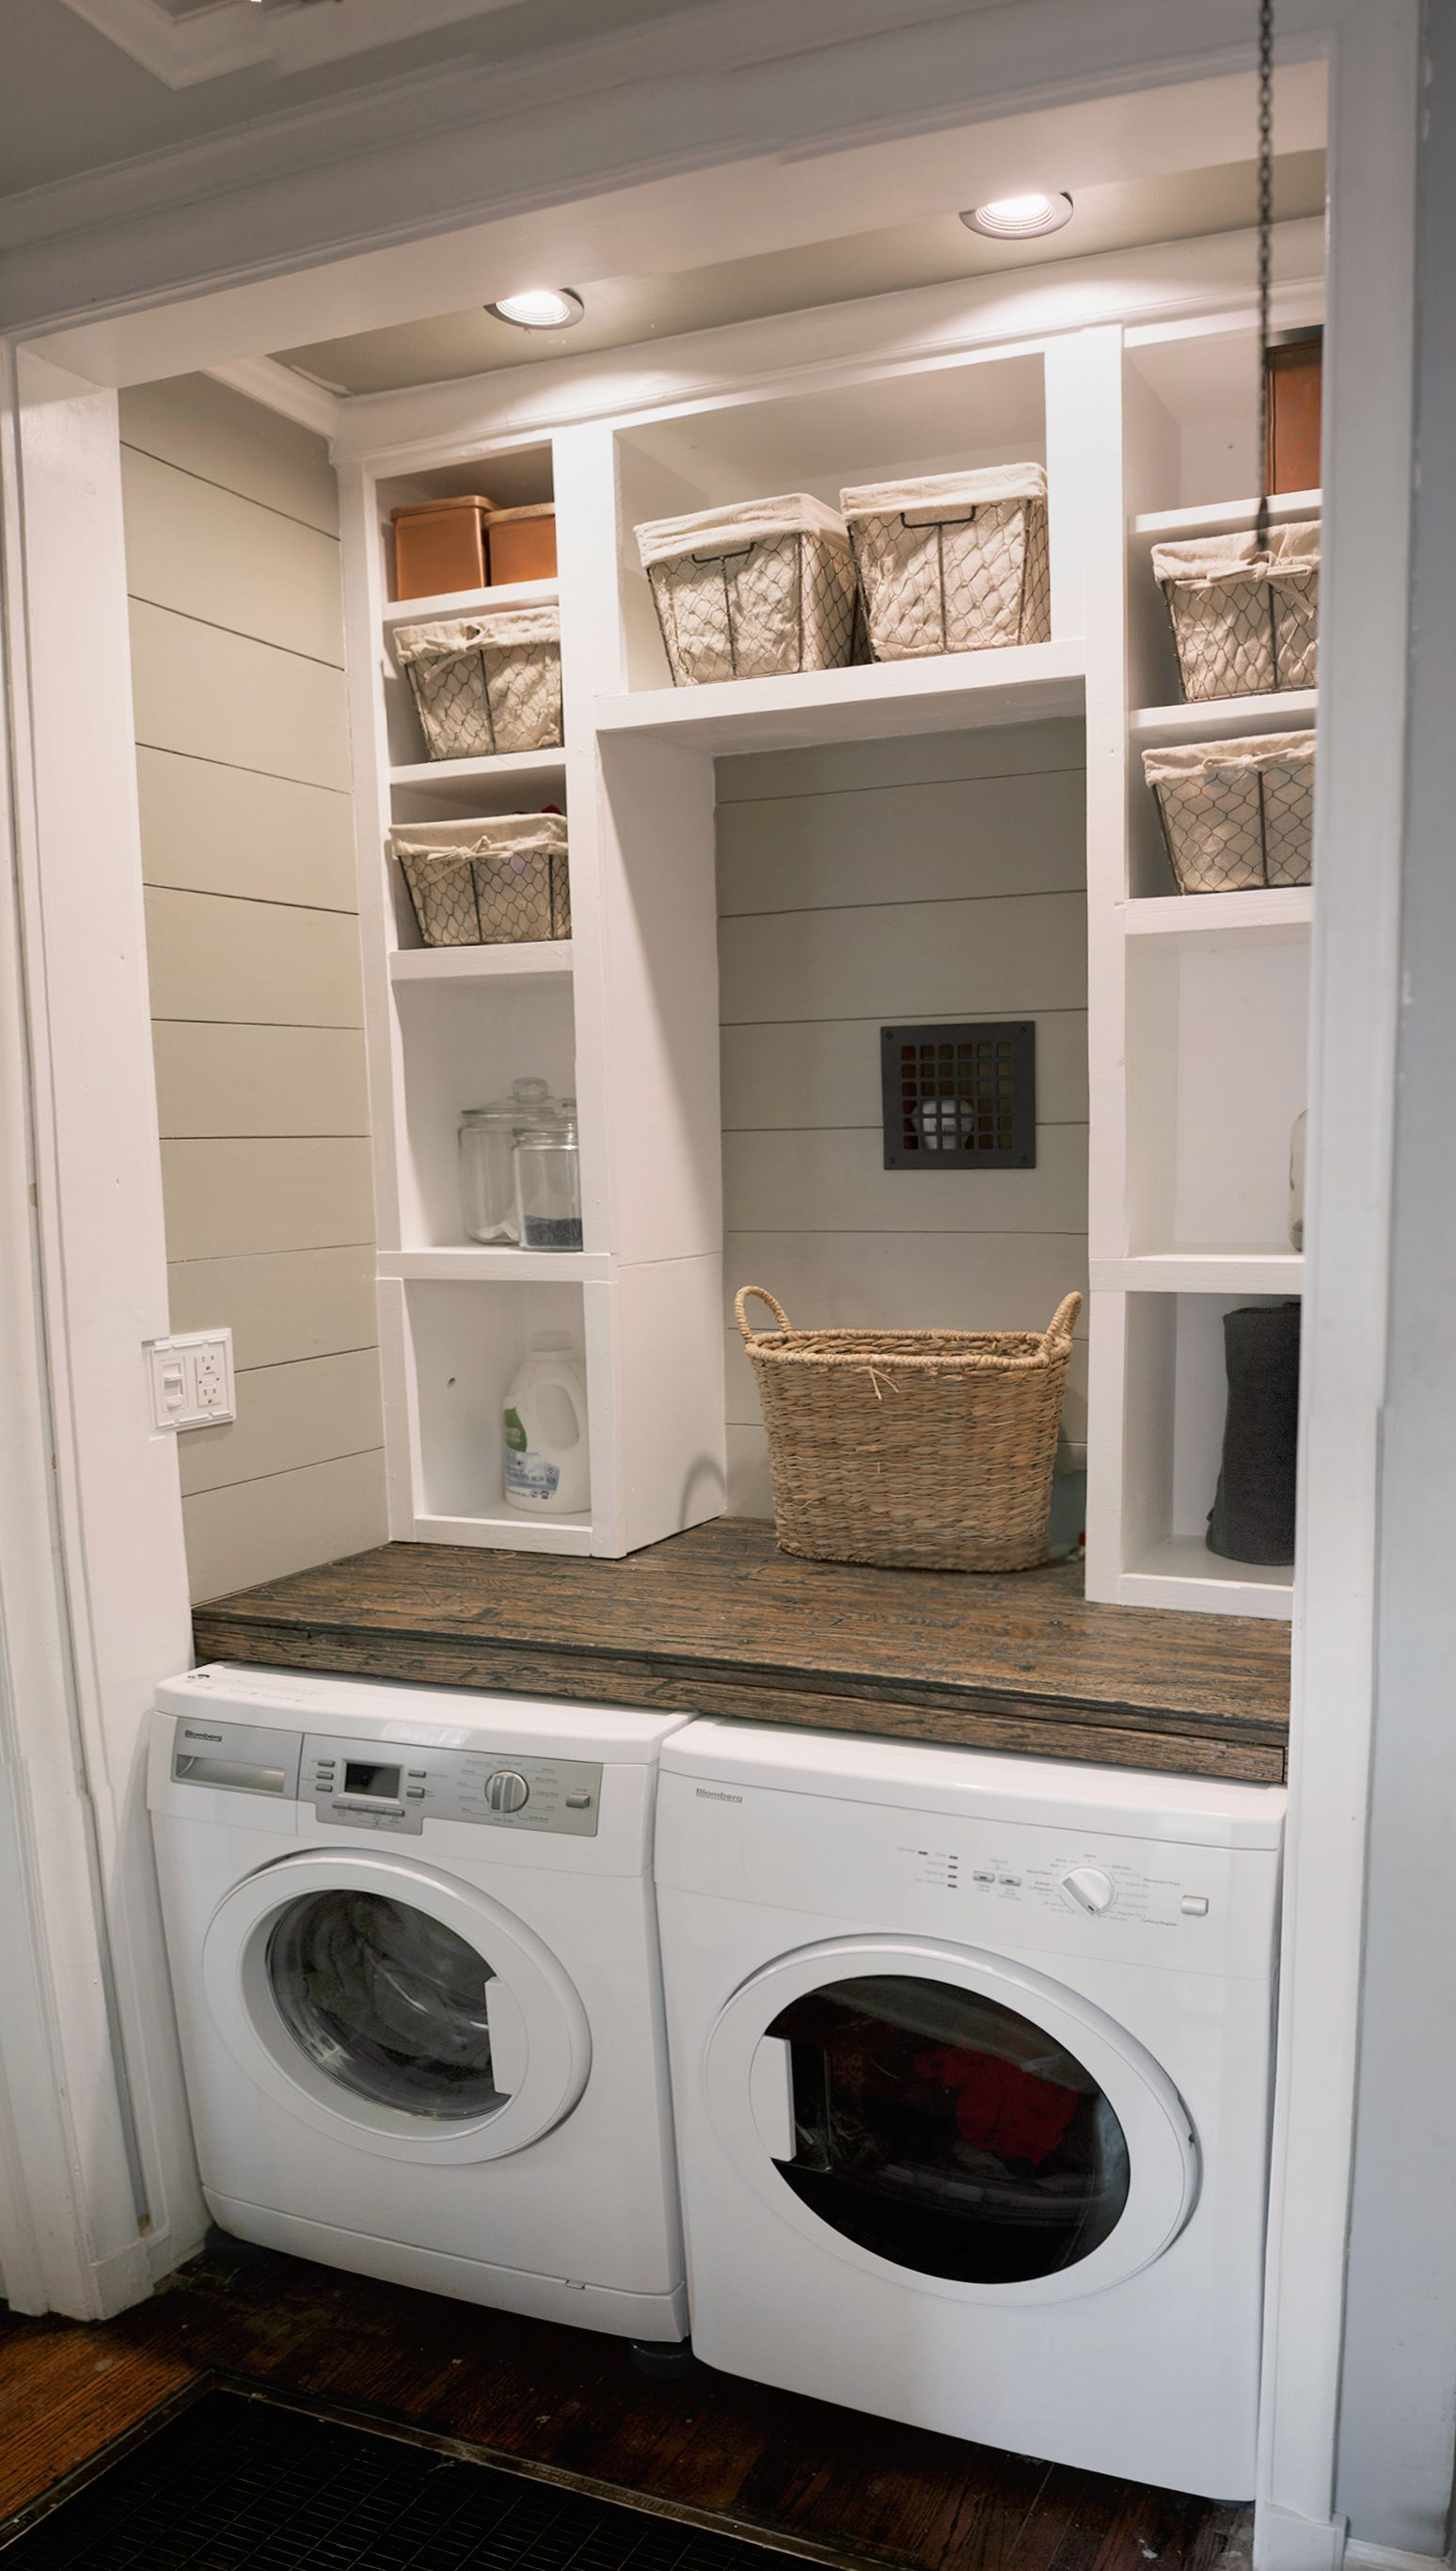 Closet To Laundry Room Conversion In 2019 Ideas For The